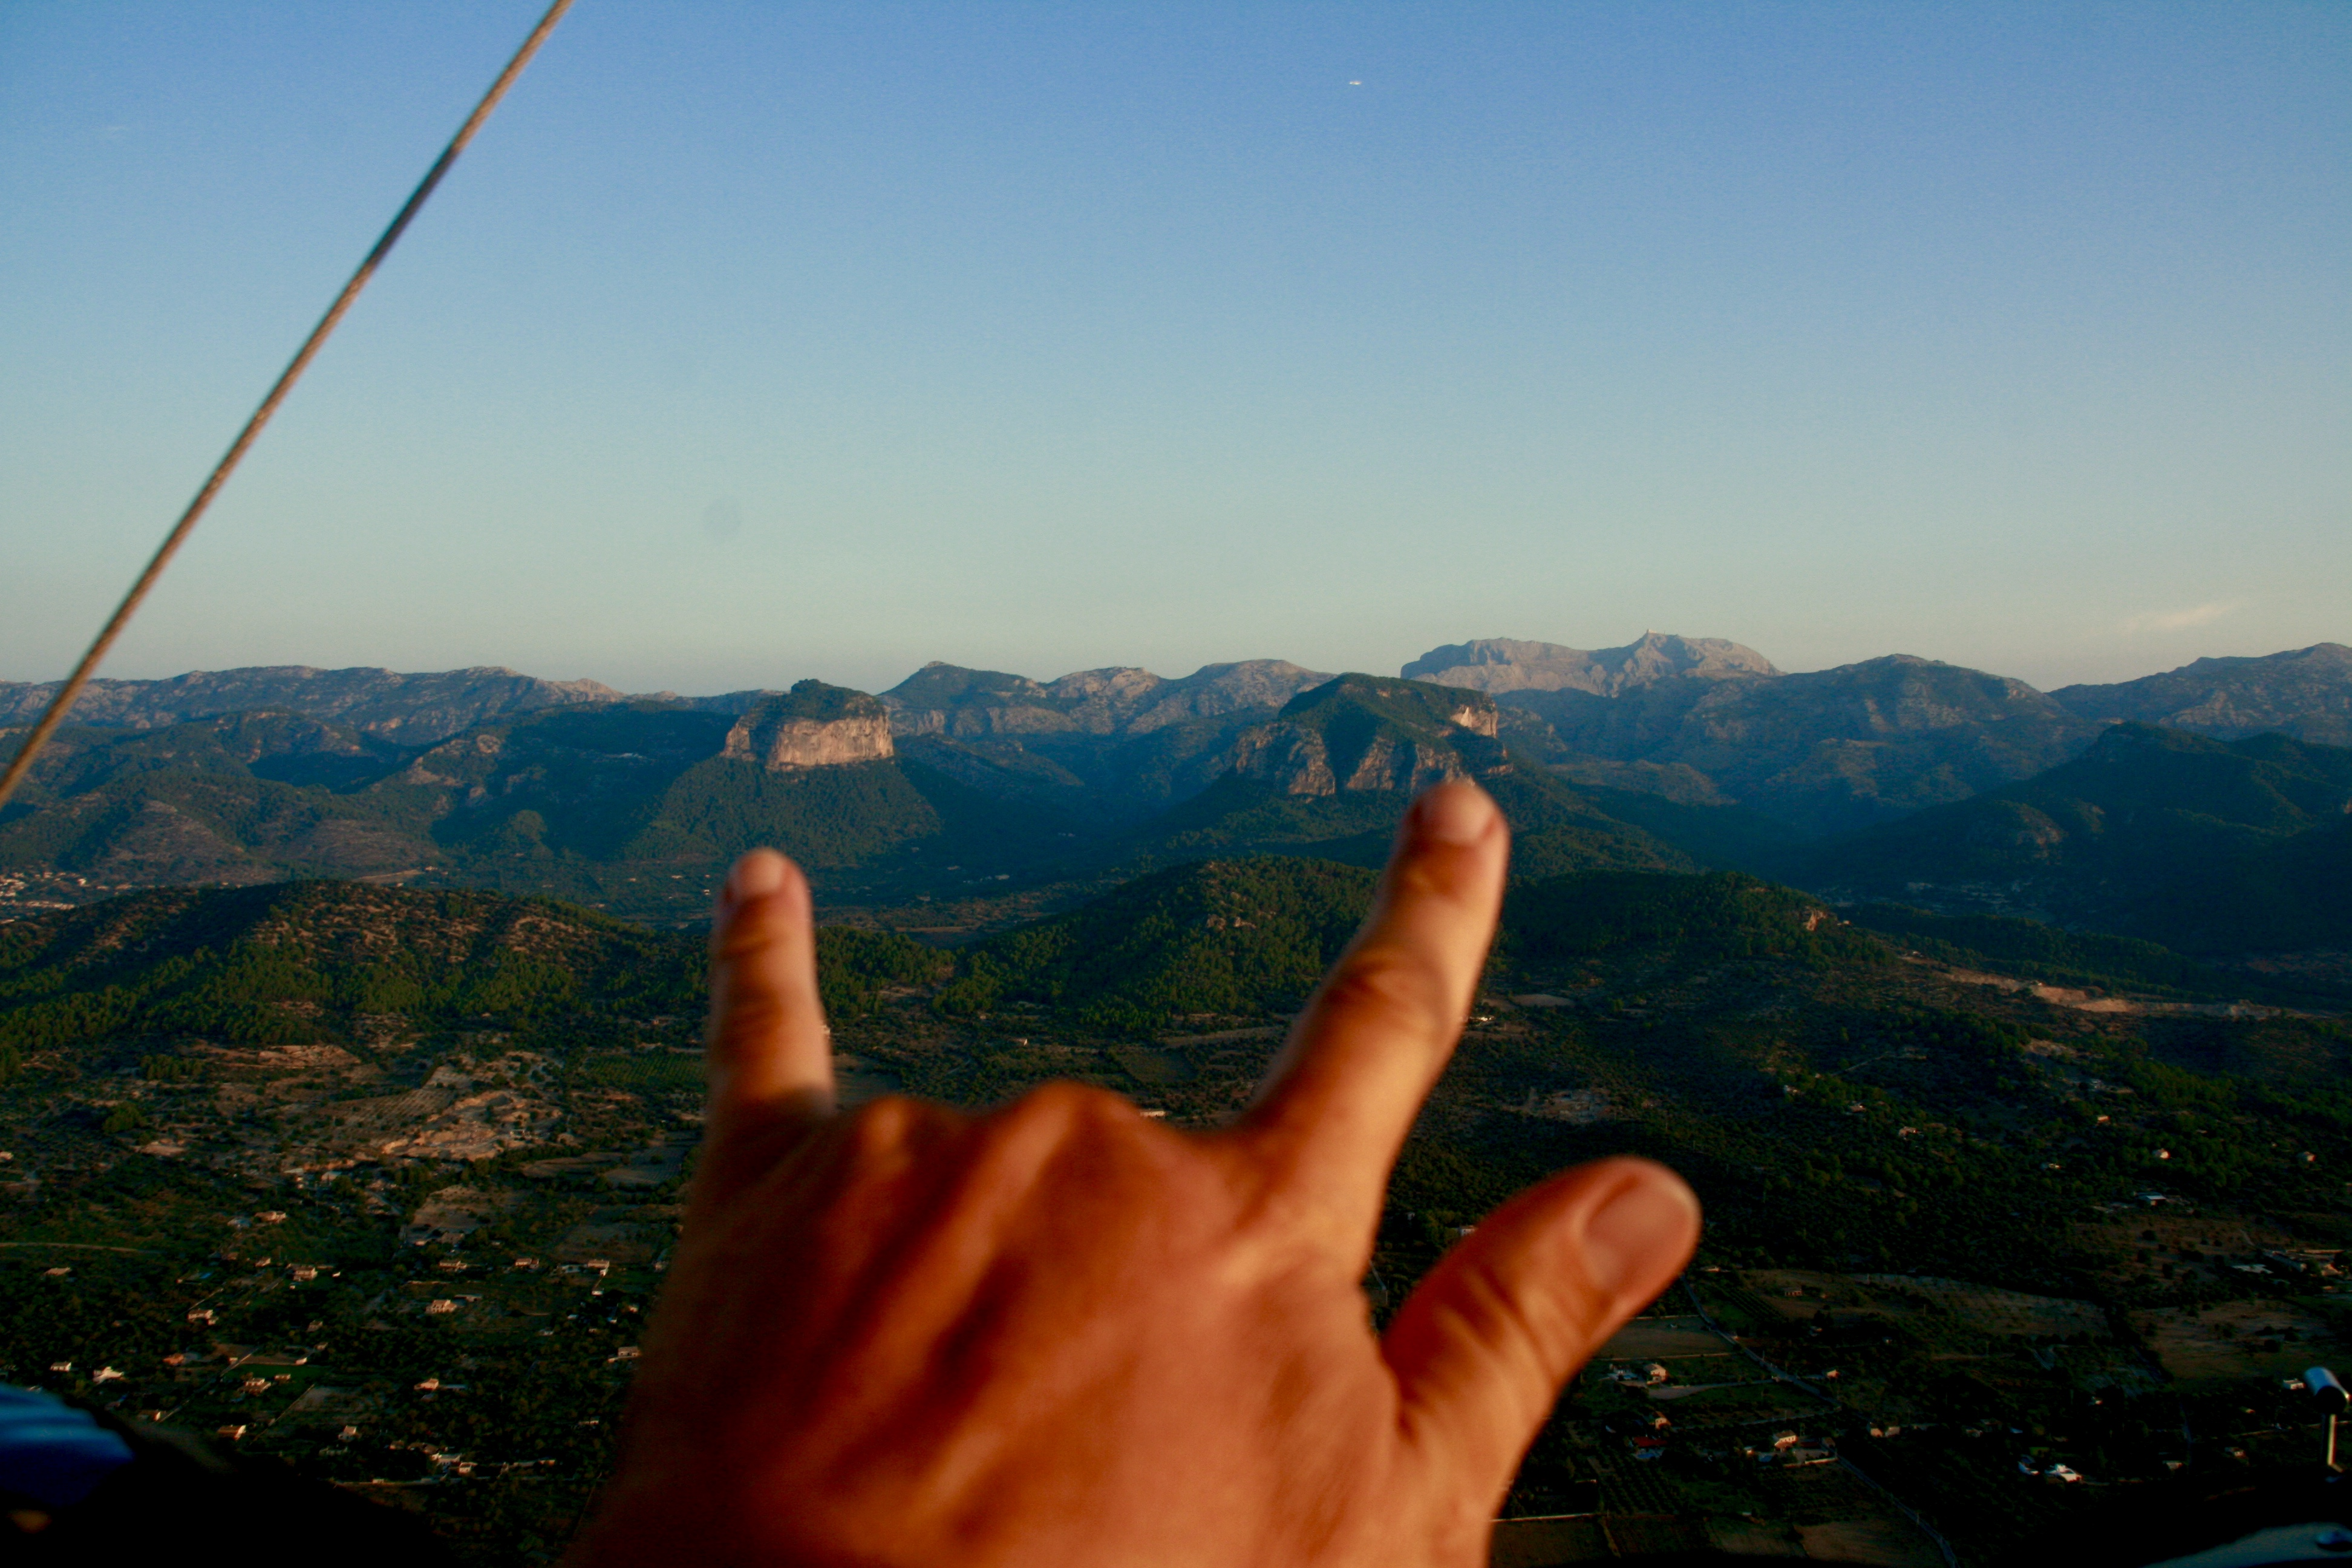 Mallorca in Spain… one of the worlds most beautiful islands to fly FA0D3193-EB6A-4136-A00B-C1B